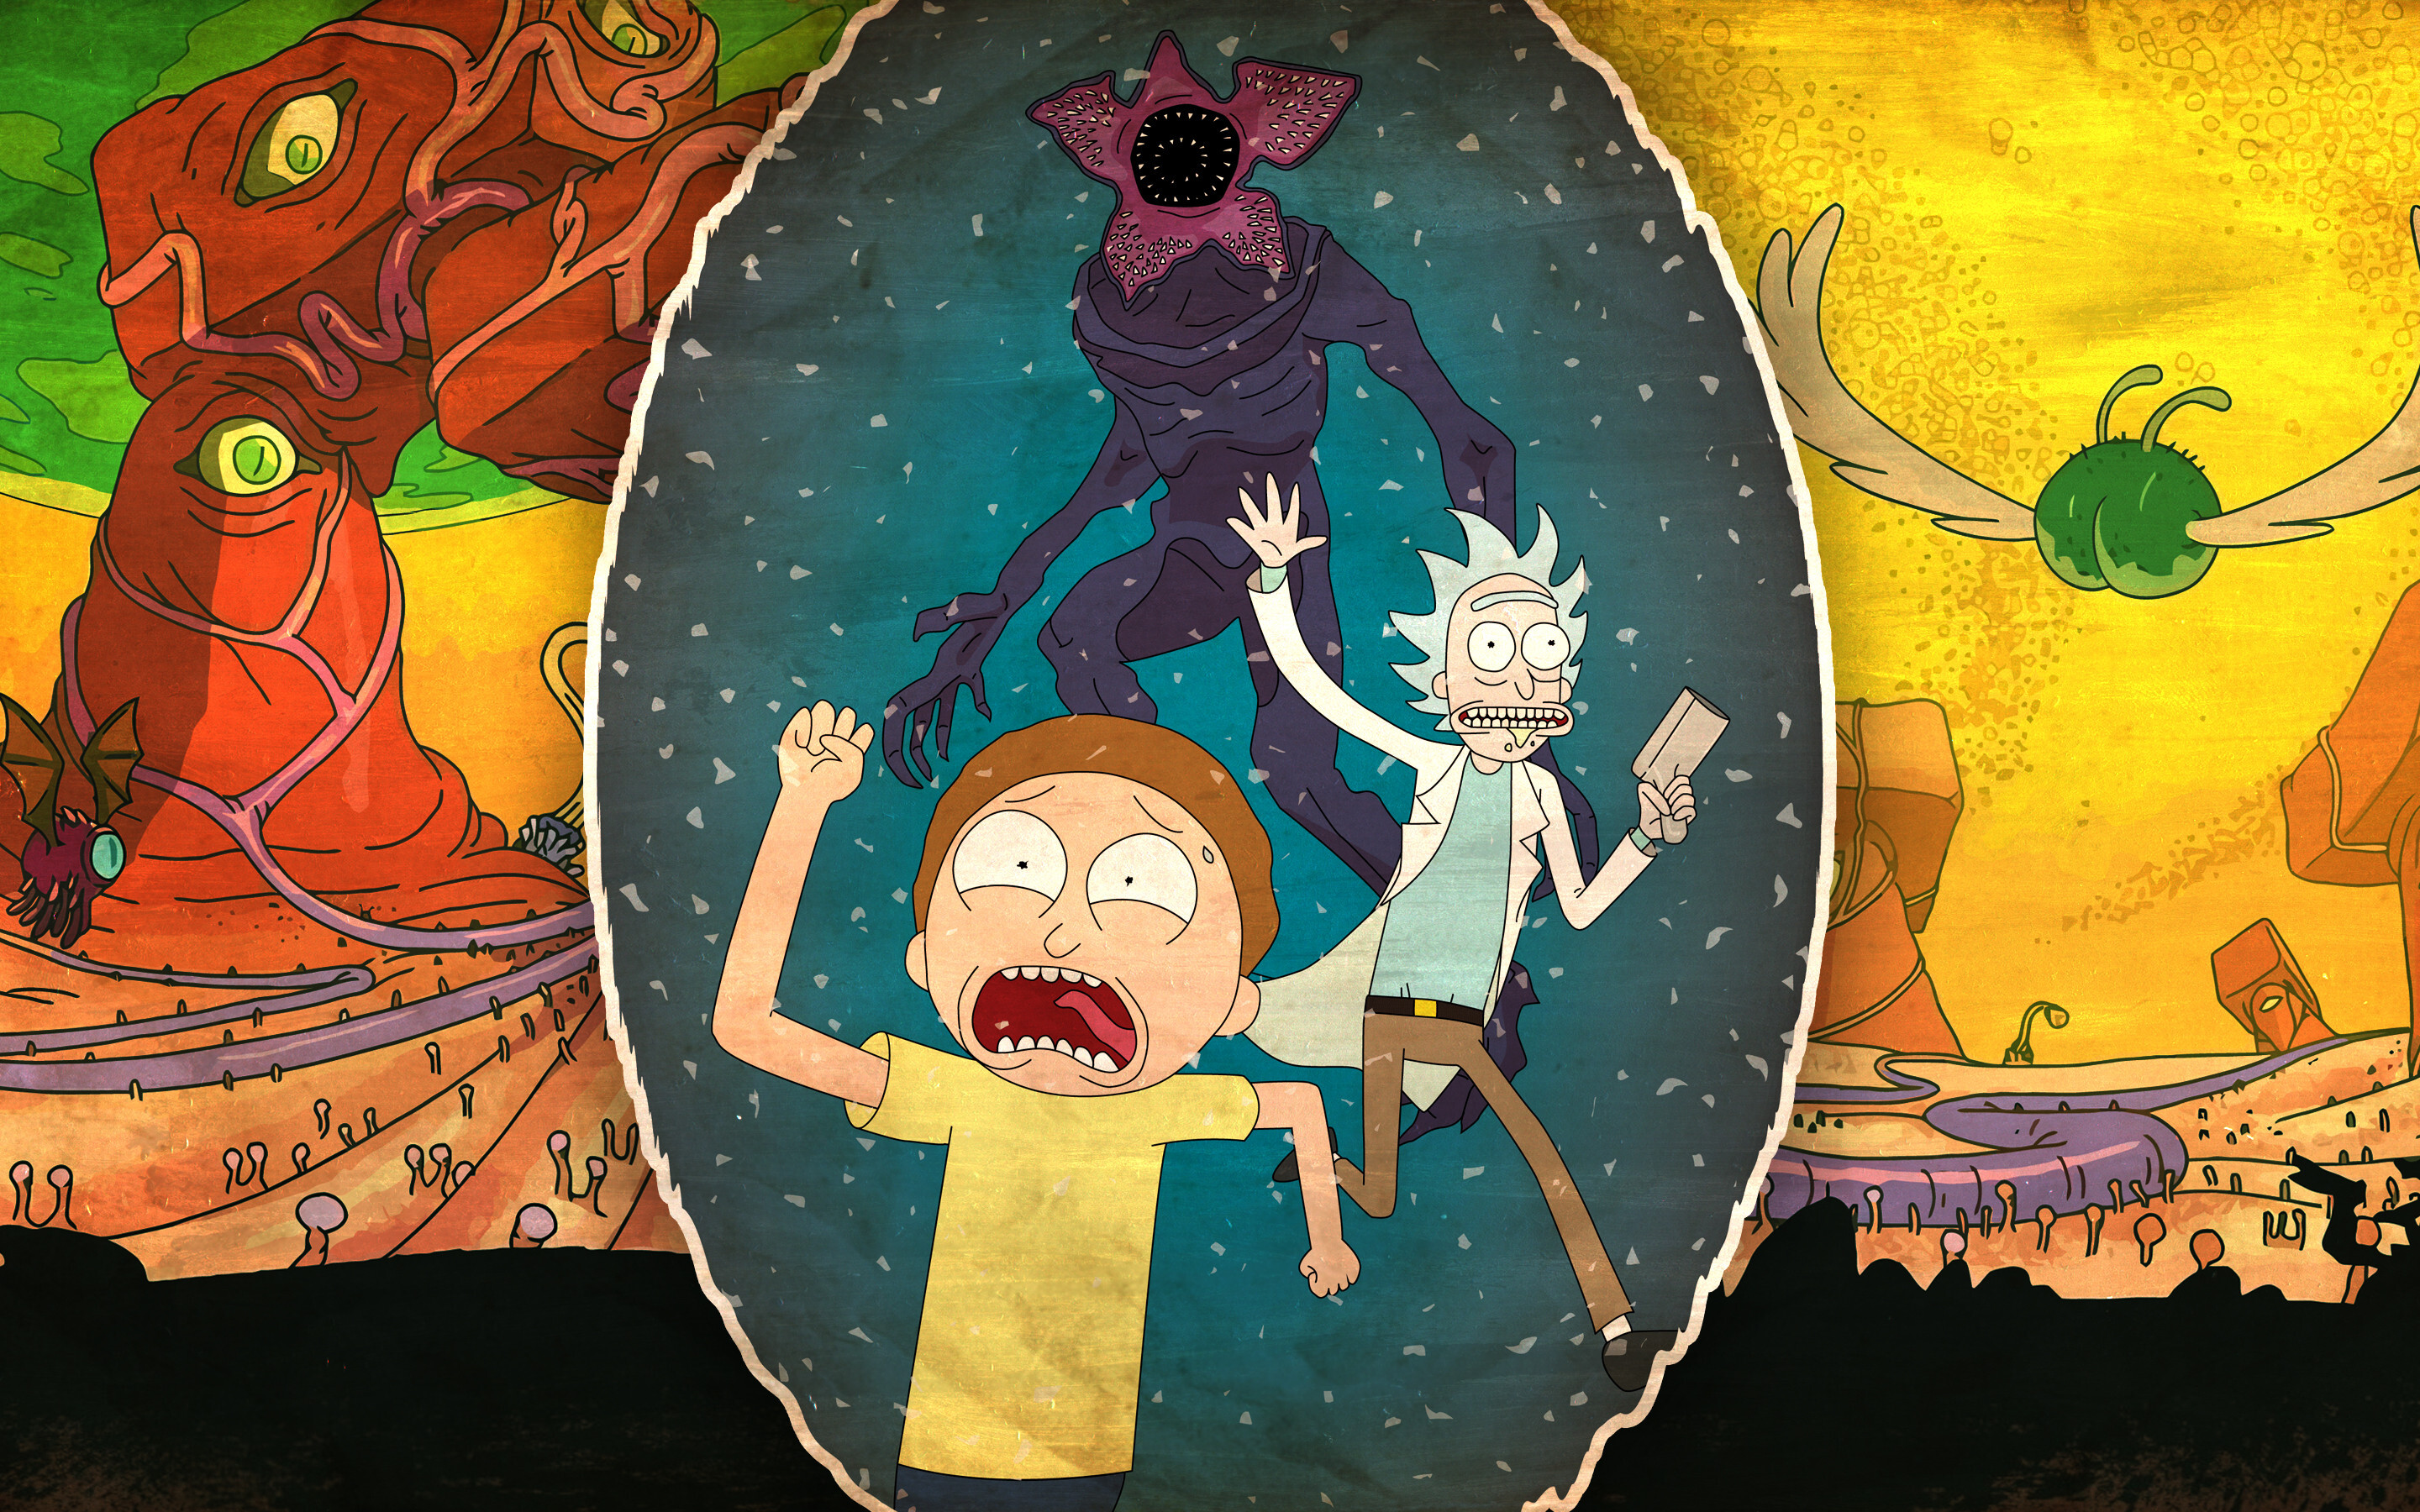 2880x1800 Rick And Morty 4k Macbook Pro Retina Hd 4k Wallpapers